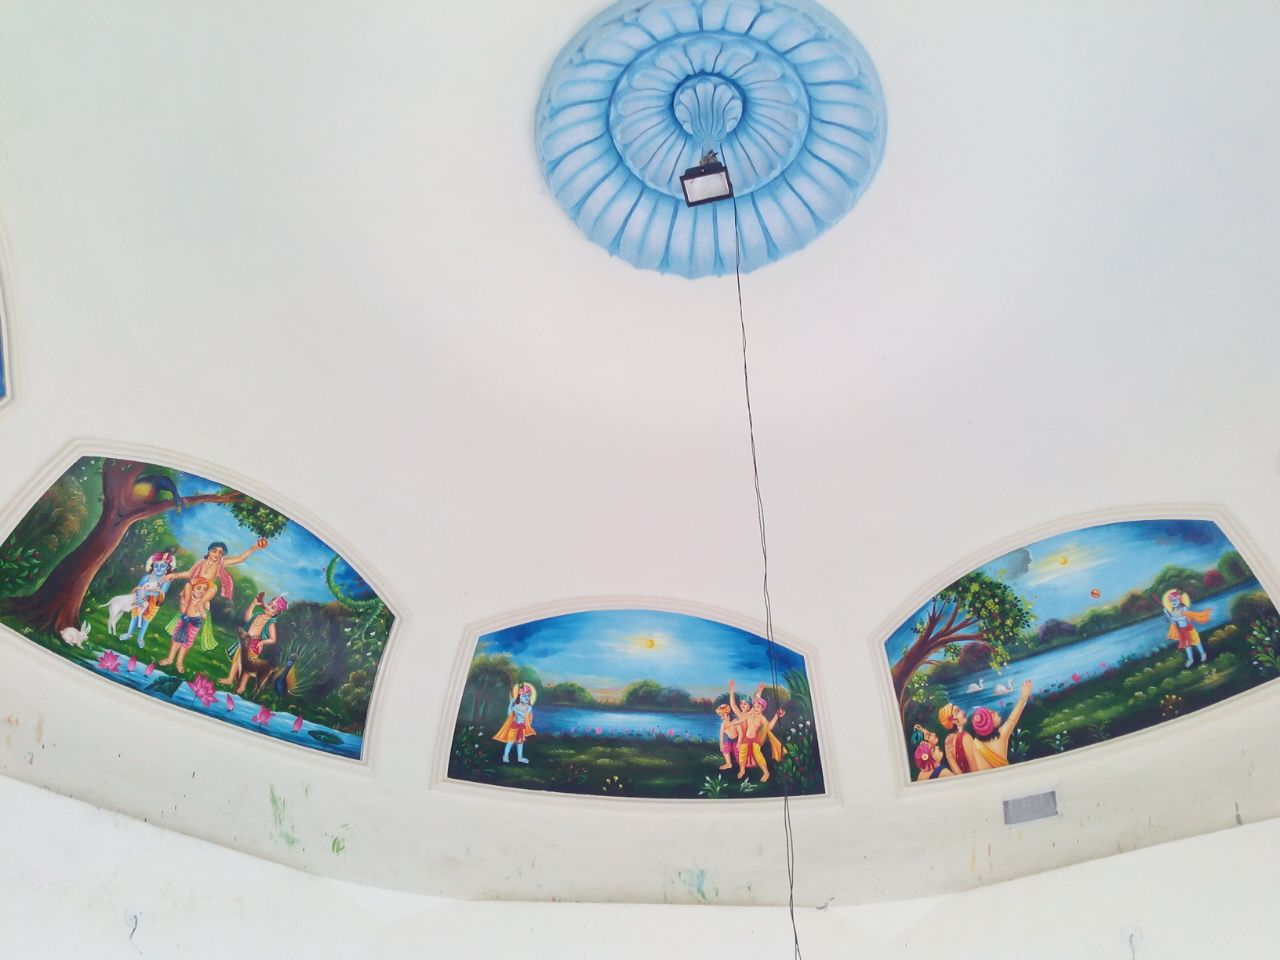 Paintings on the ceiling depicting the leela